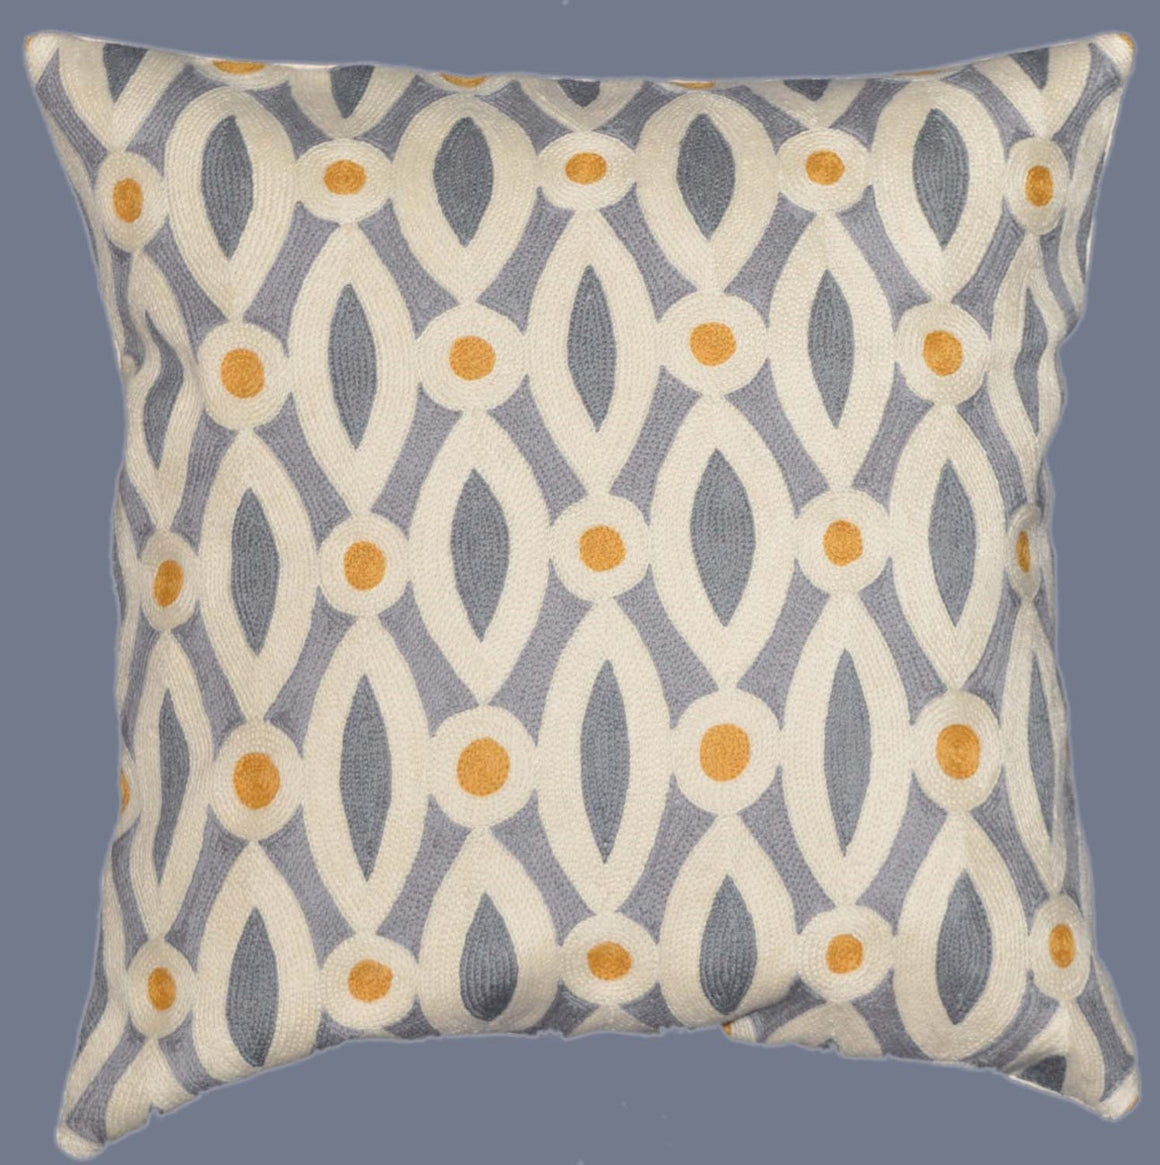 Crewel Chain Stitch Pillow Cushion Cover, Multicolor #CW-1101